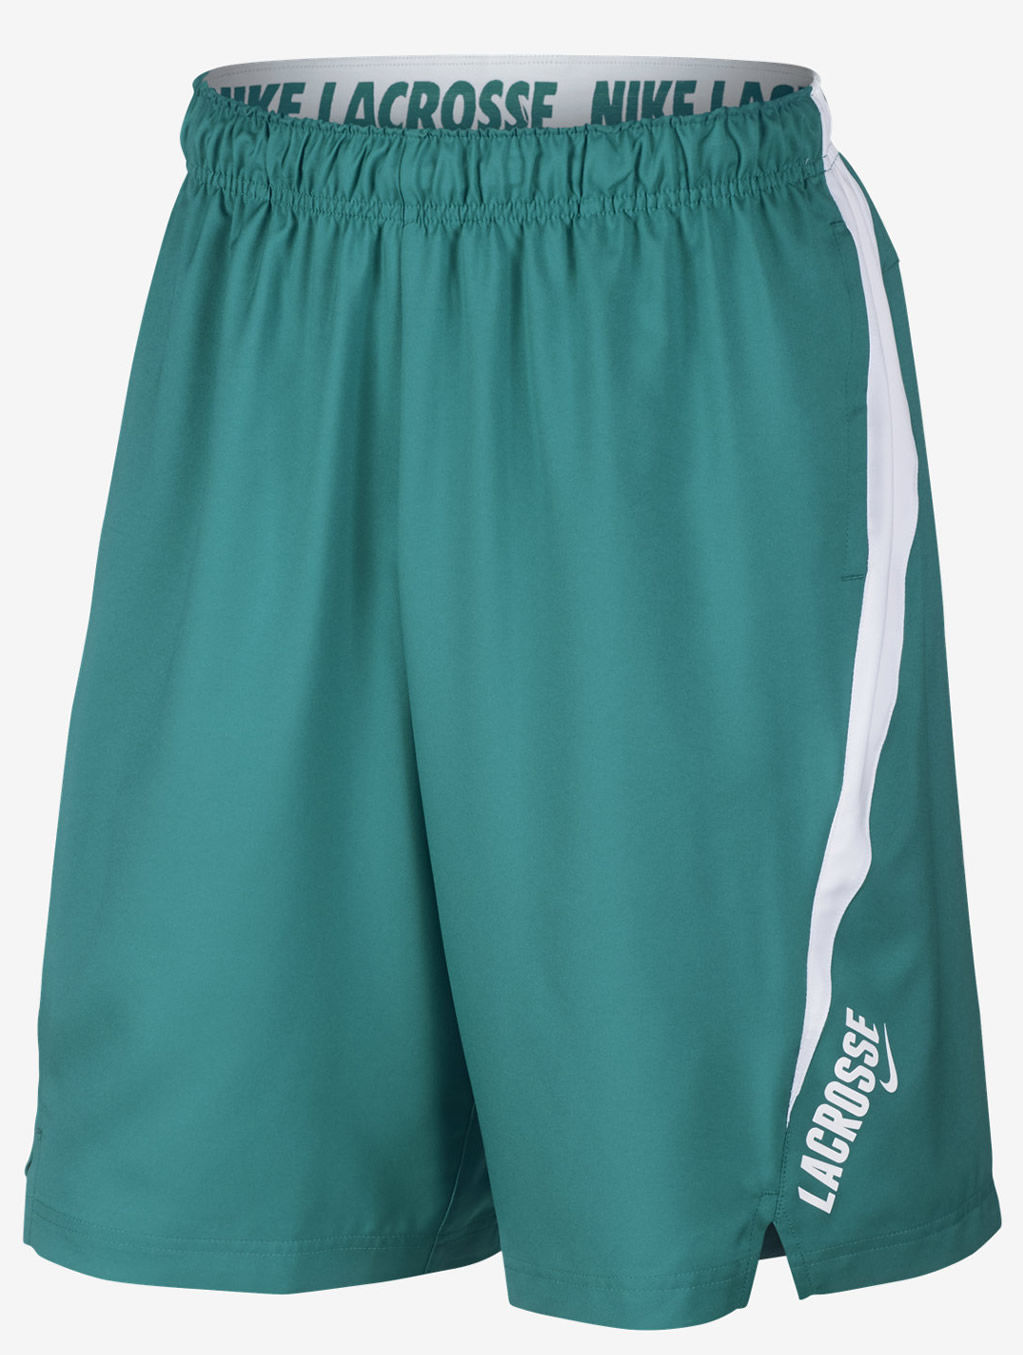 Nike Lacrosse Woven Emerald Men's Training Shorts